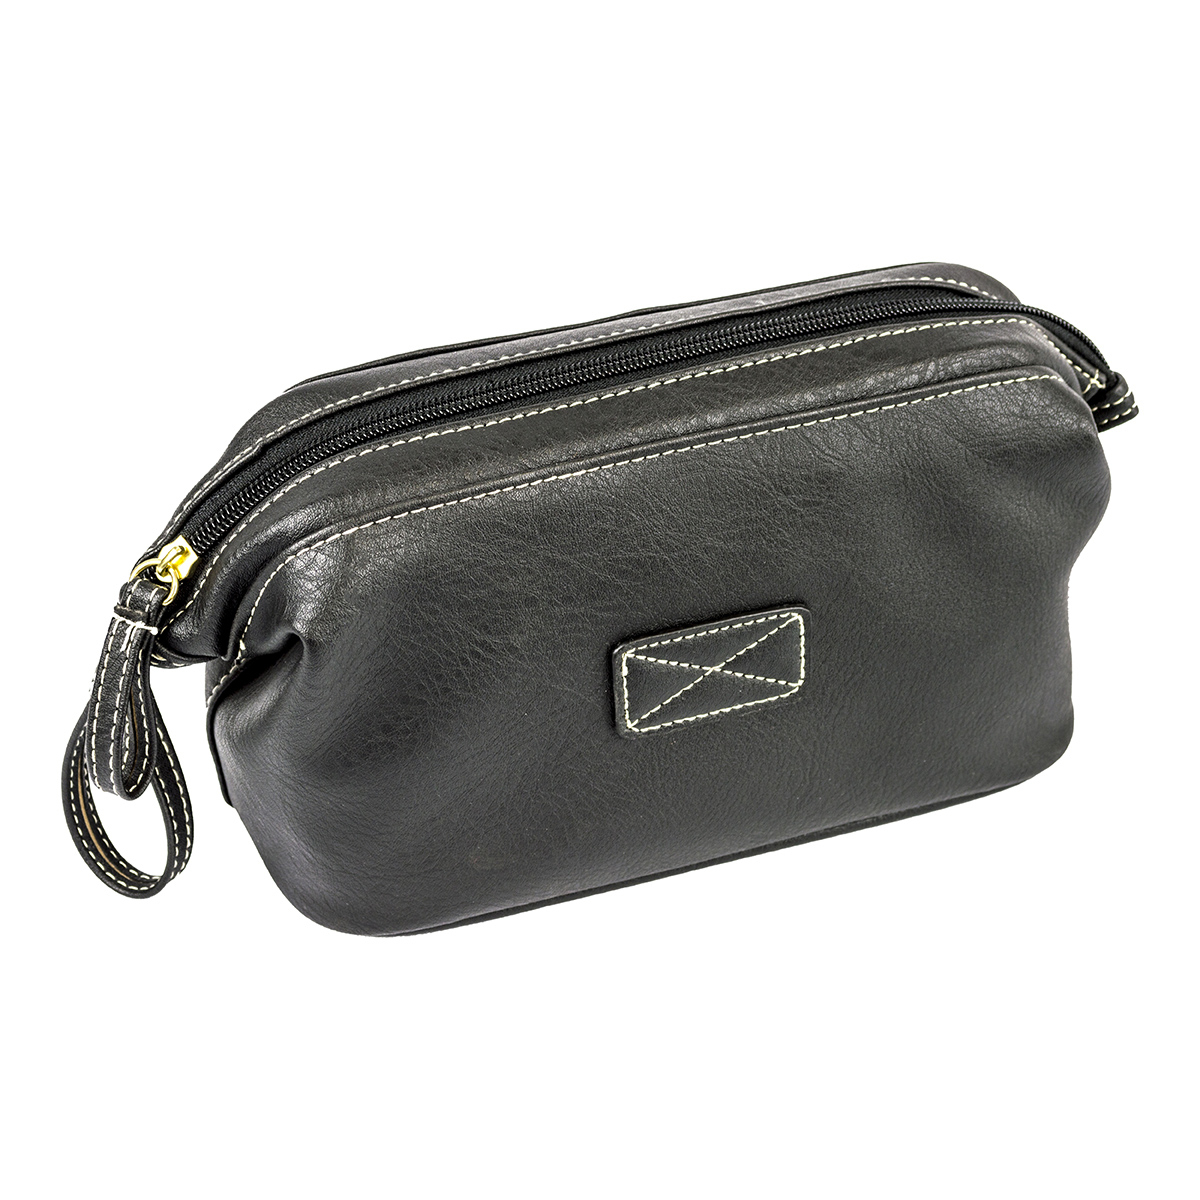 Mens Toiletry Bag, Vegan Leather Compact Top Frame Travel Kit, Black 5ae344b7469fe22d60106374